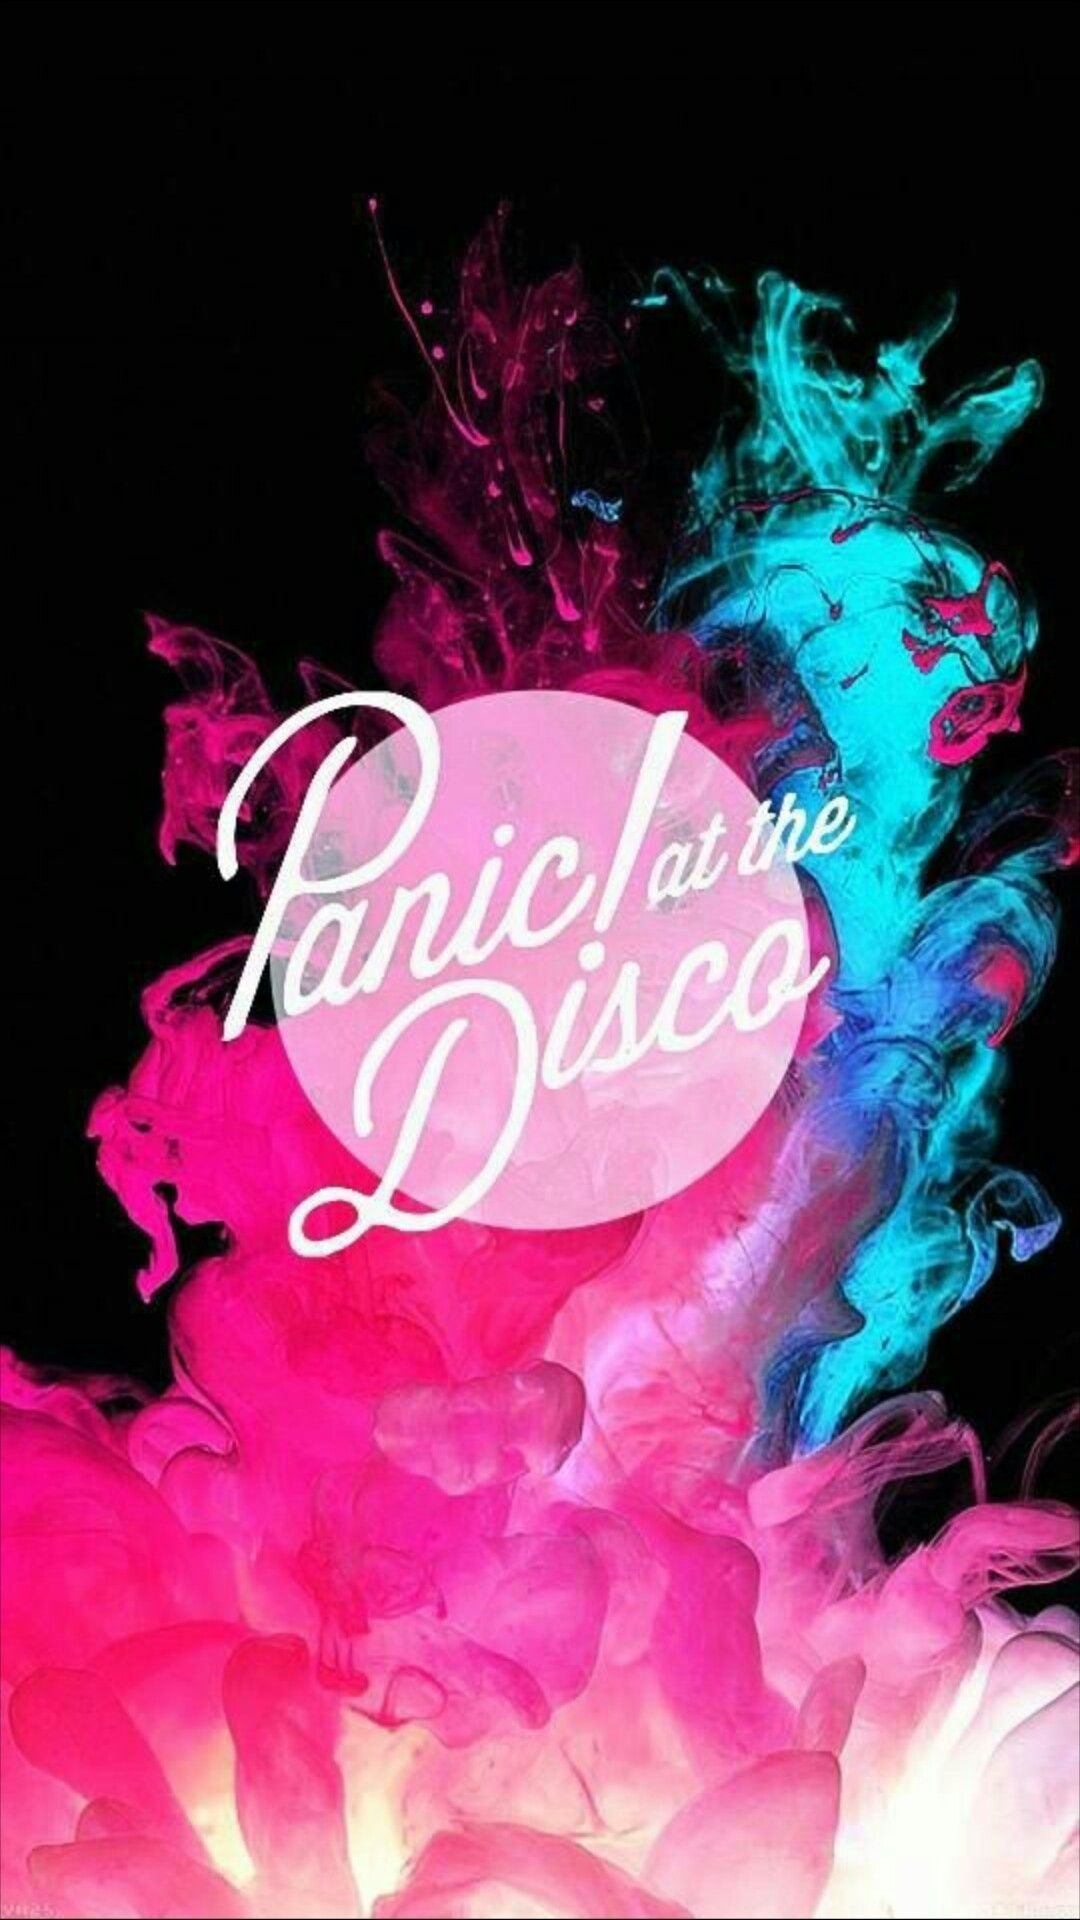 panic at the disco wallpaper 1080x1920 for iphone 5s | p!atd